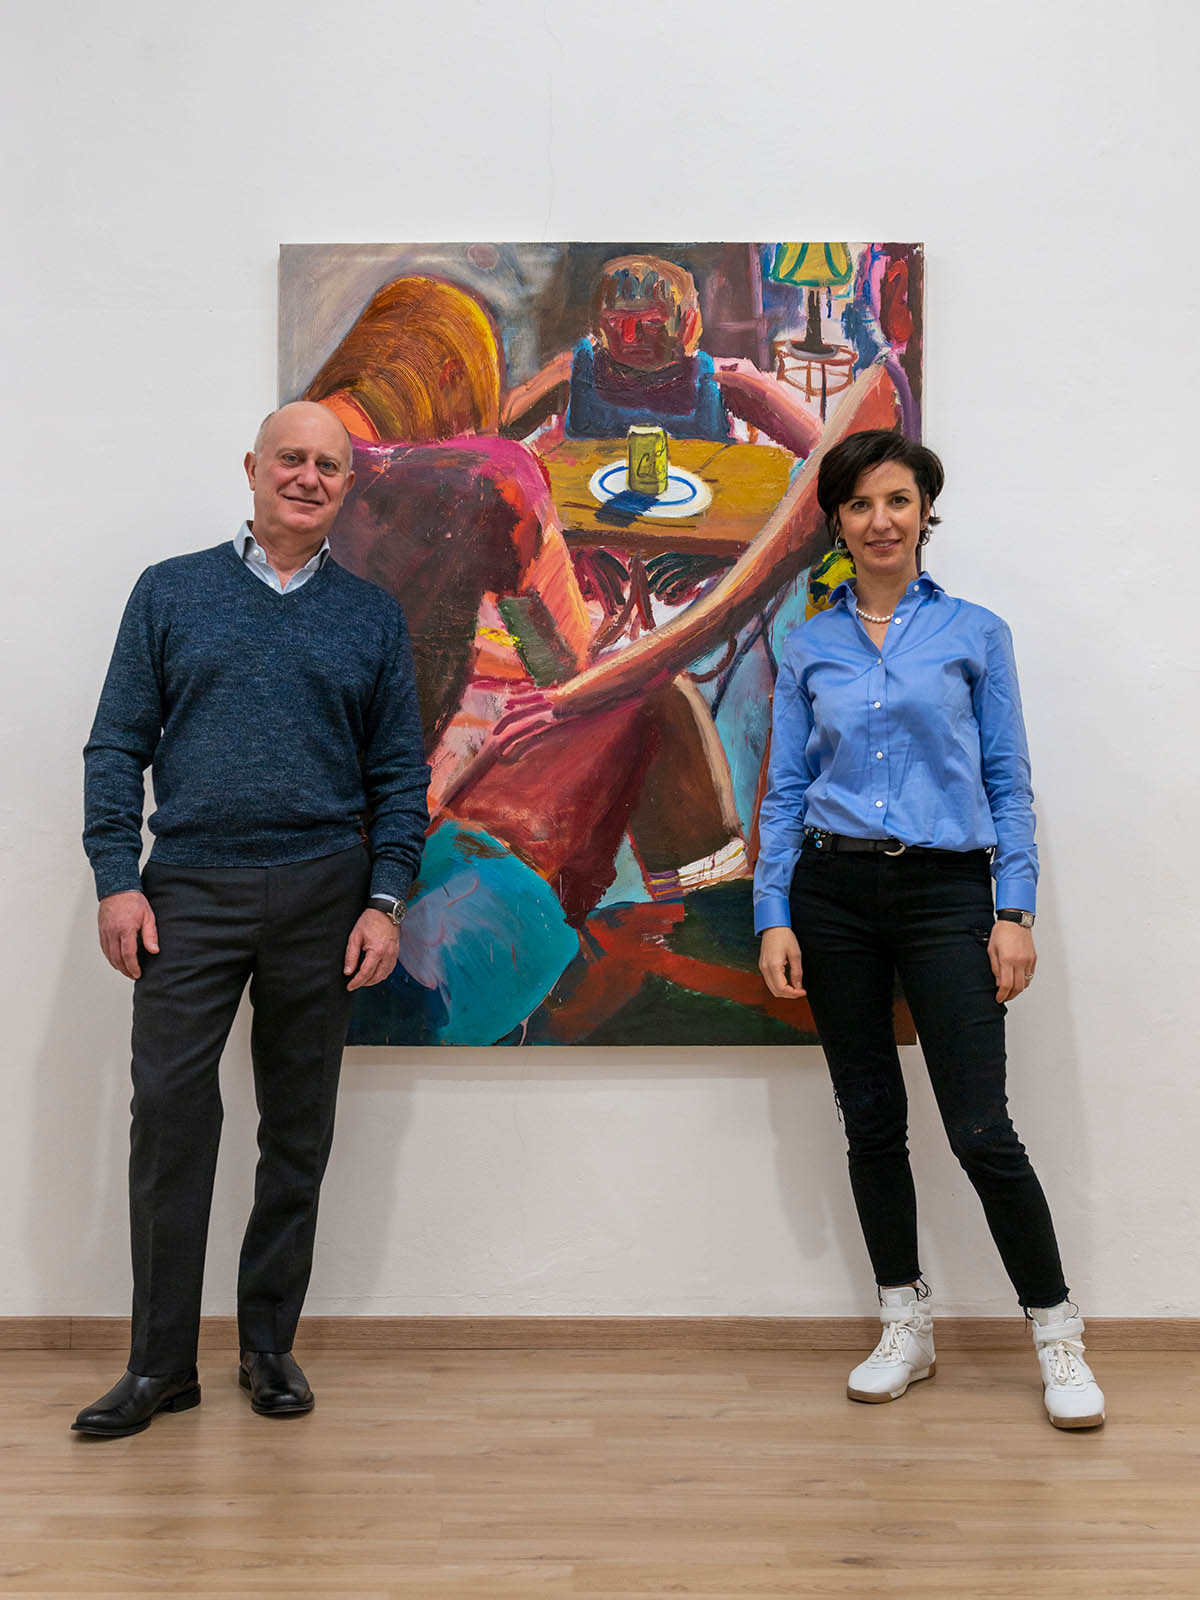 Tatiana Yasinek and Marco Palacino, collector of the gallery and founder of Orizzonte Capital Sgr, with a work by Jacob Patrick Brooks (1994, USA), whose show has opened in January 2021, photo by Mattia Mognetti